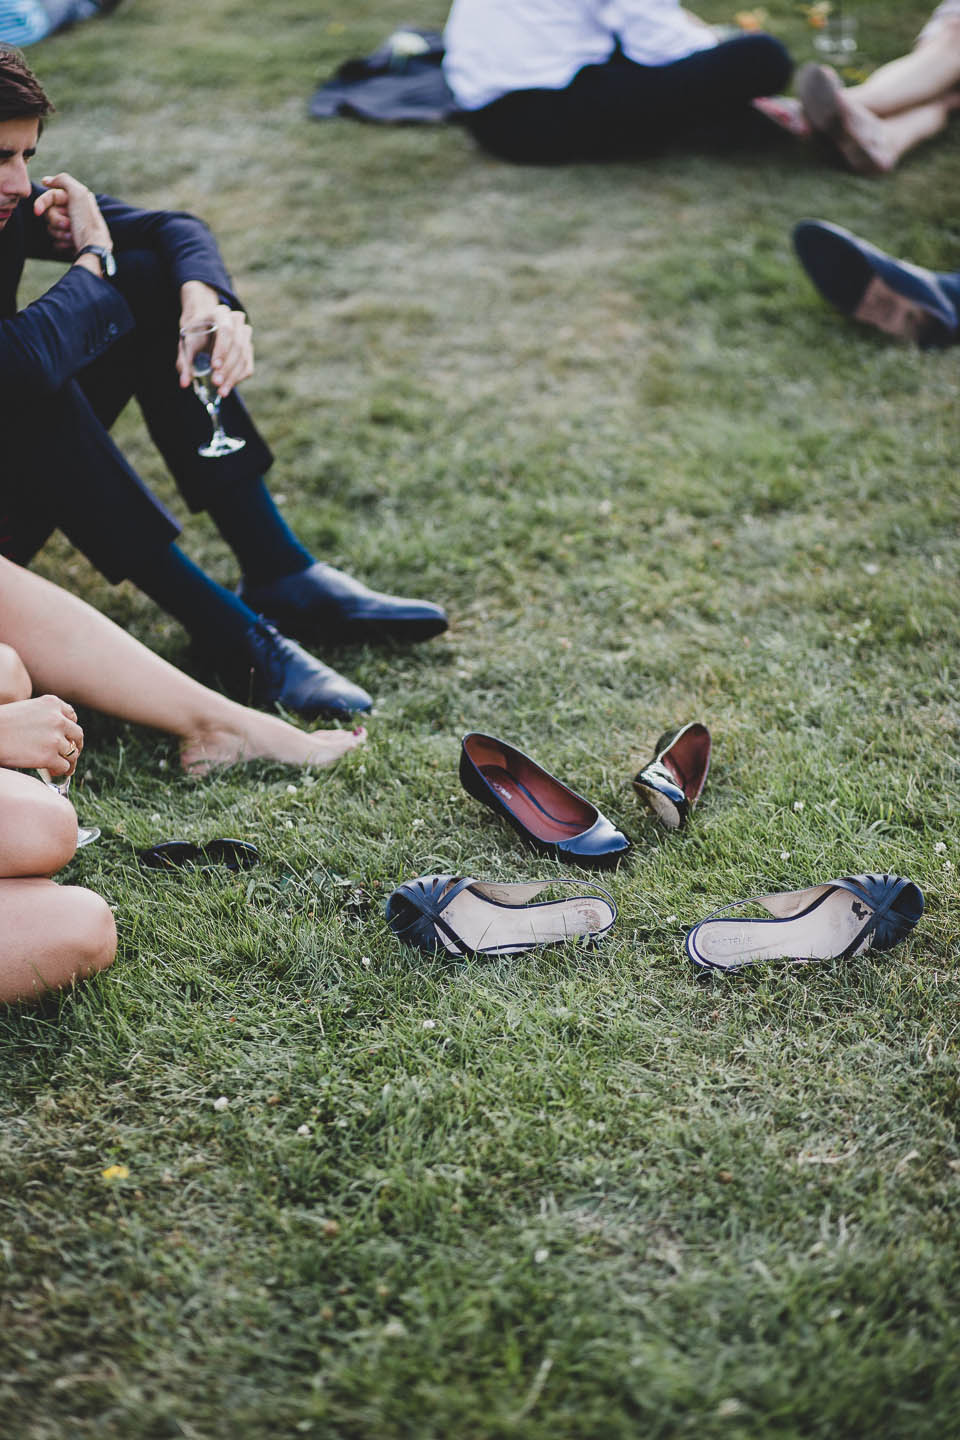 Weding_French_American_Loire_Chateau_Chambiers_JeanLaurentGaudy_084